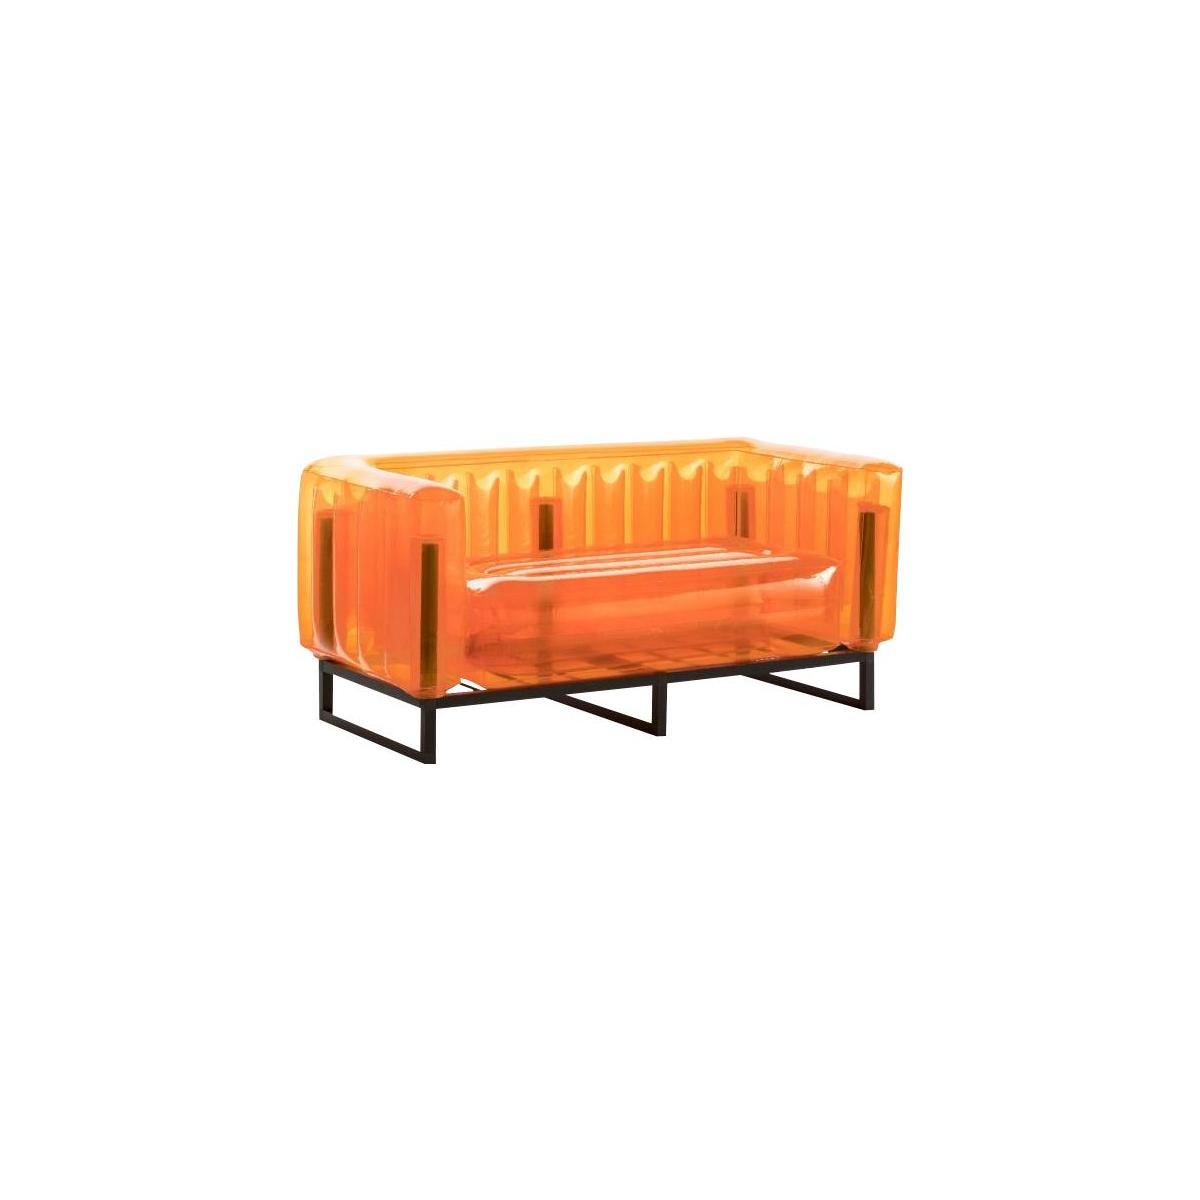 Canapé gonflable 2 places en PVC - Orange n°1